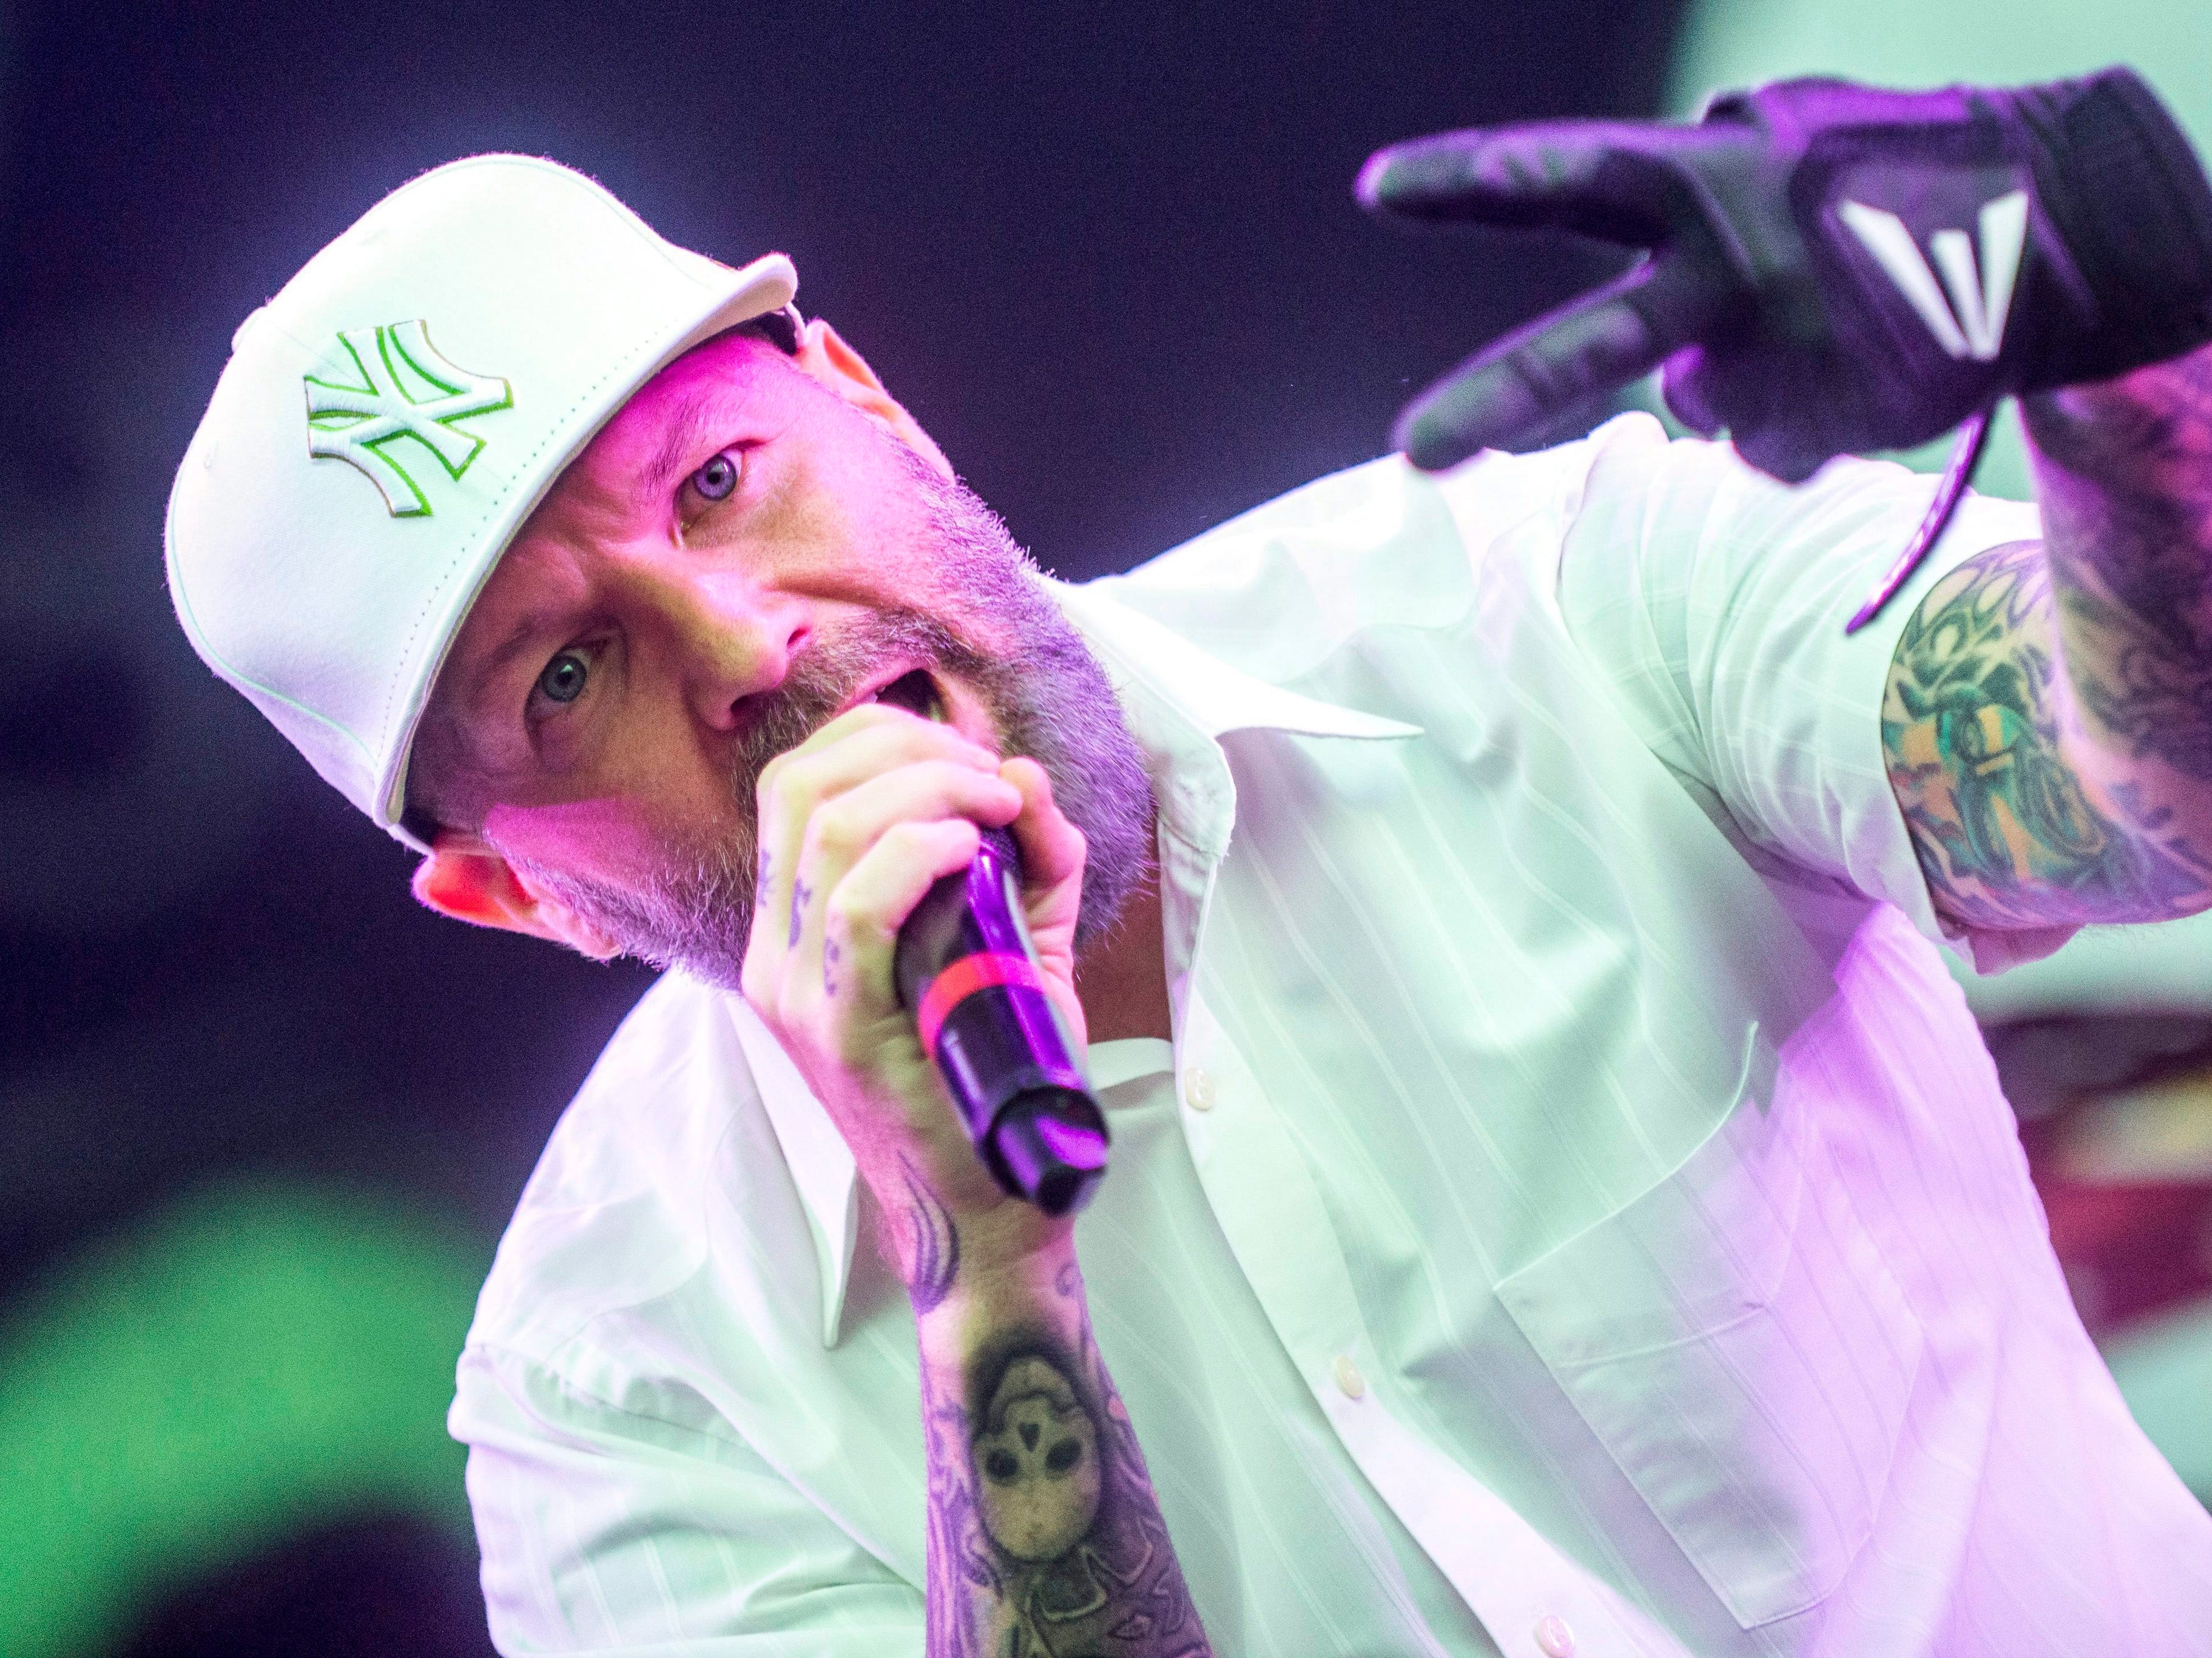 epa04886489 Singer Fred Durst of US metal band Limp Bizkit performs during their concert at the 23rd Sziget (Island) Festival on Shipyard Island, Northern Budapest, Hungary, 16 August, 2015.  EPA/Janos Marjai  HUNGARY OUT ORG XMIT: MTI1133